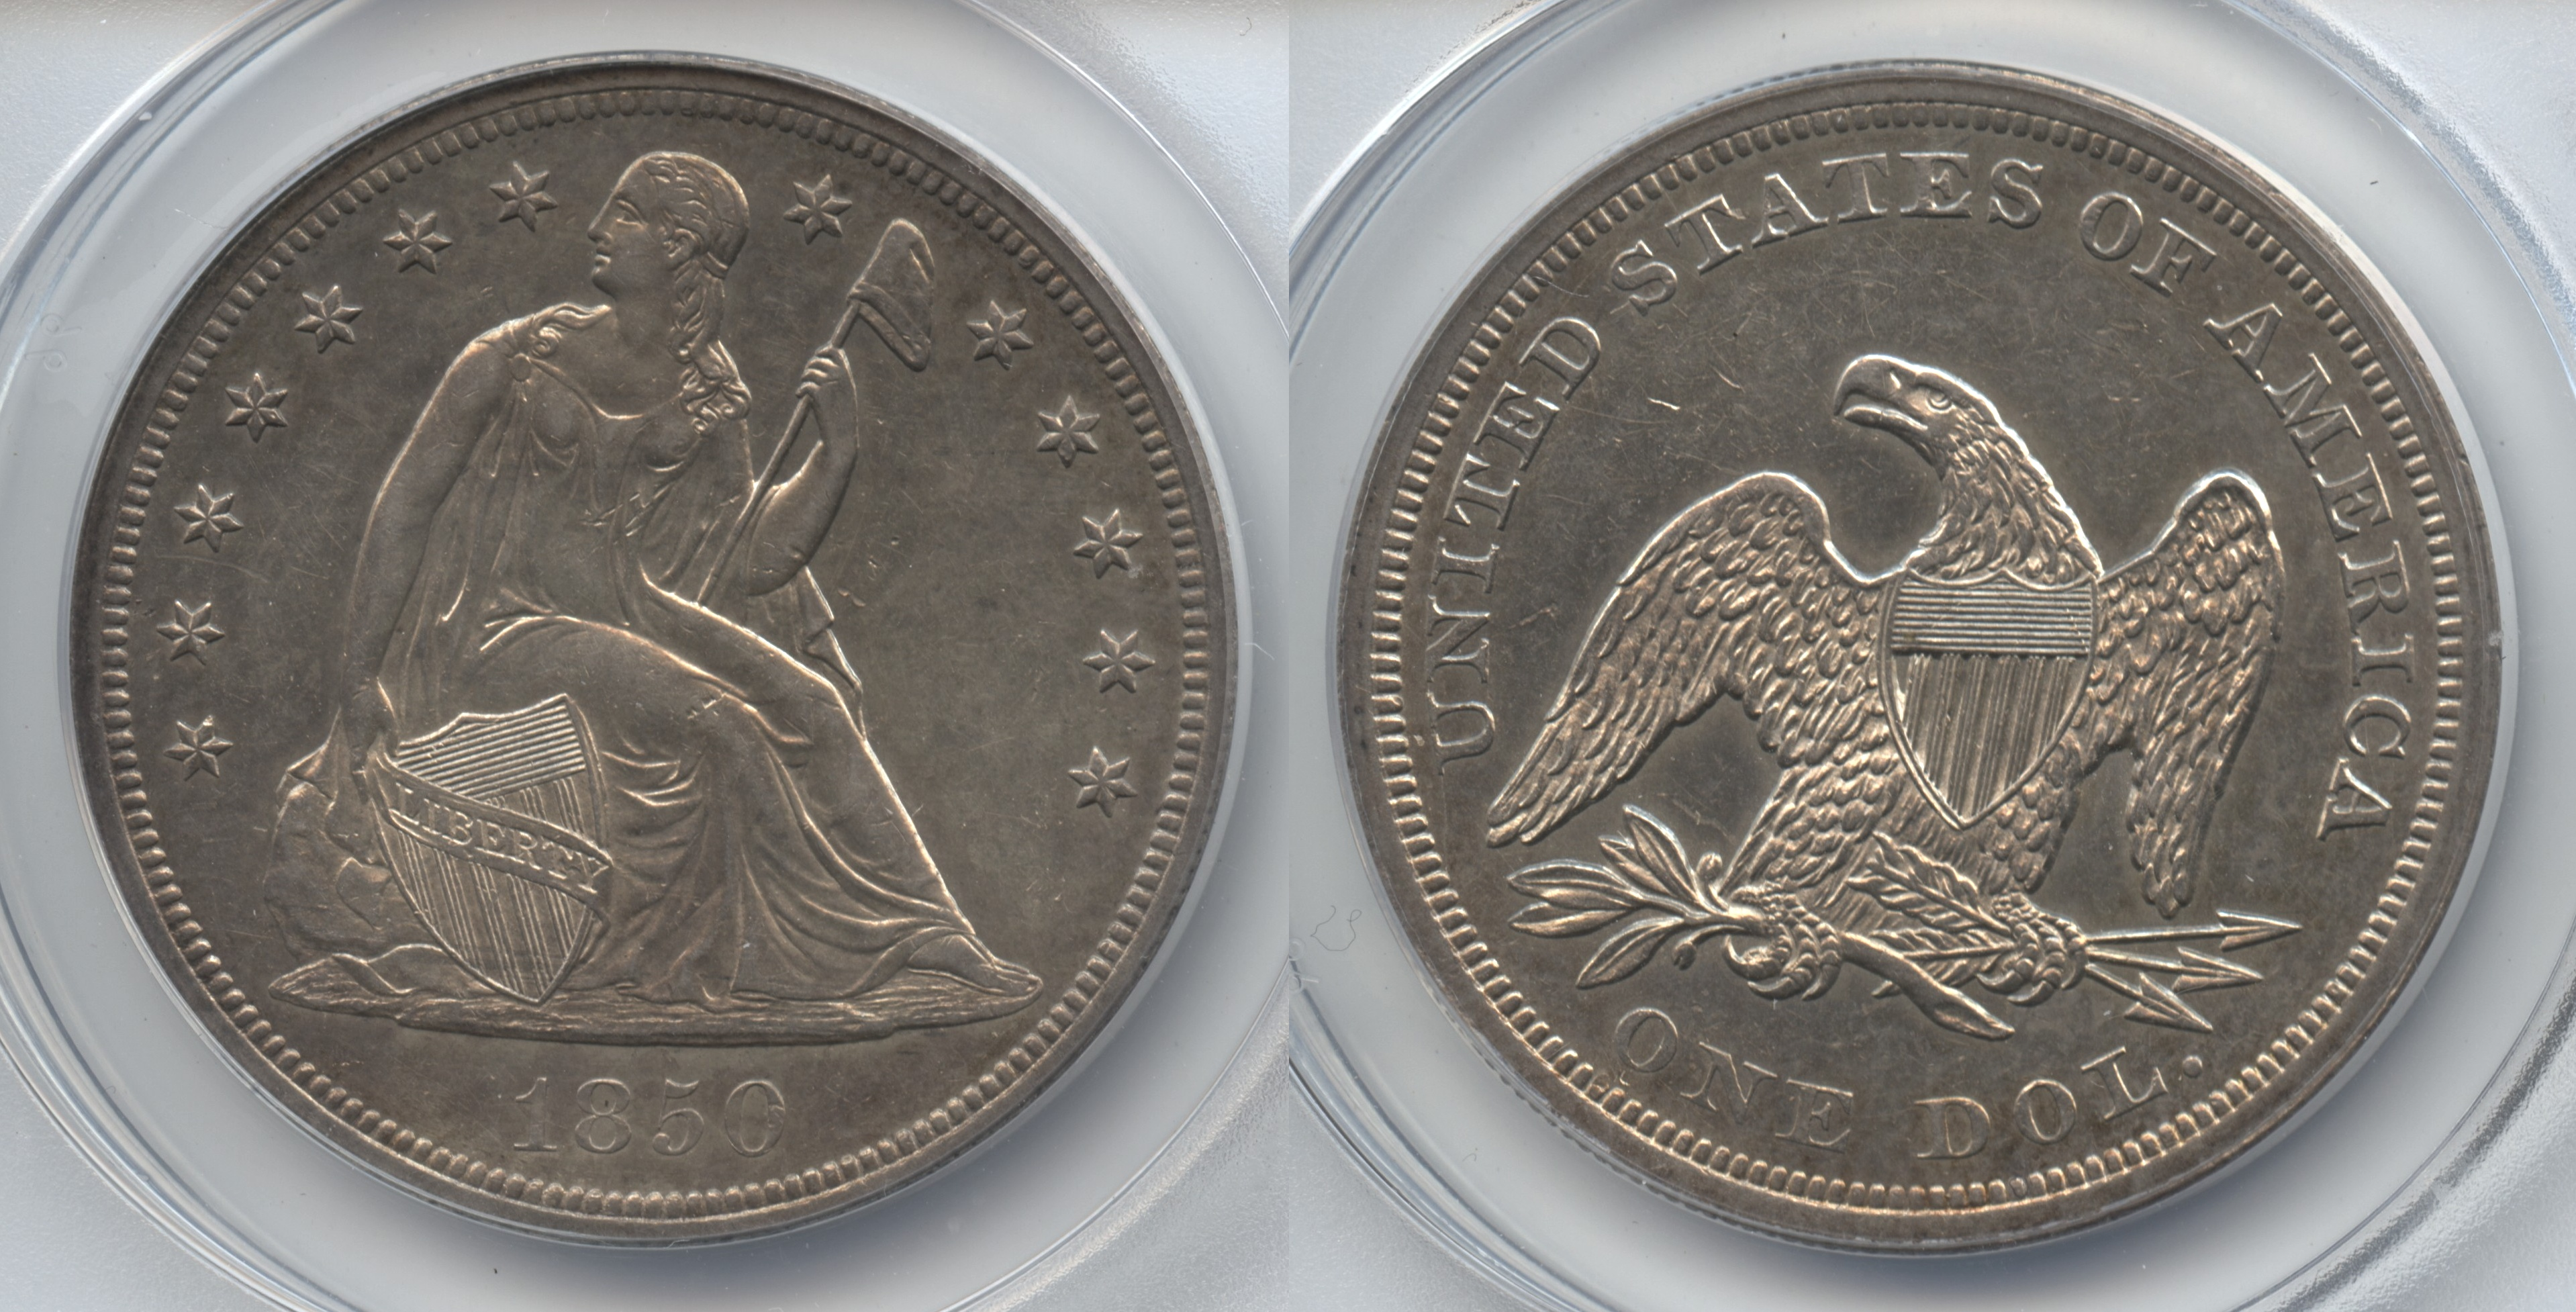 1850 Seated Liberty Silver Dollar ANACS MS-60